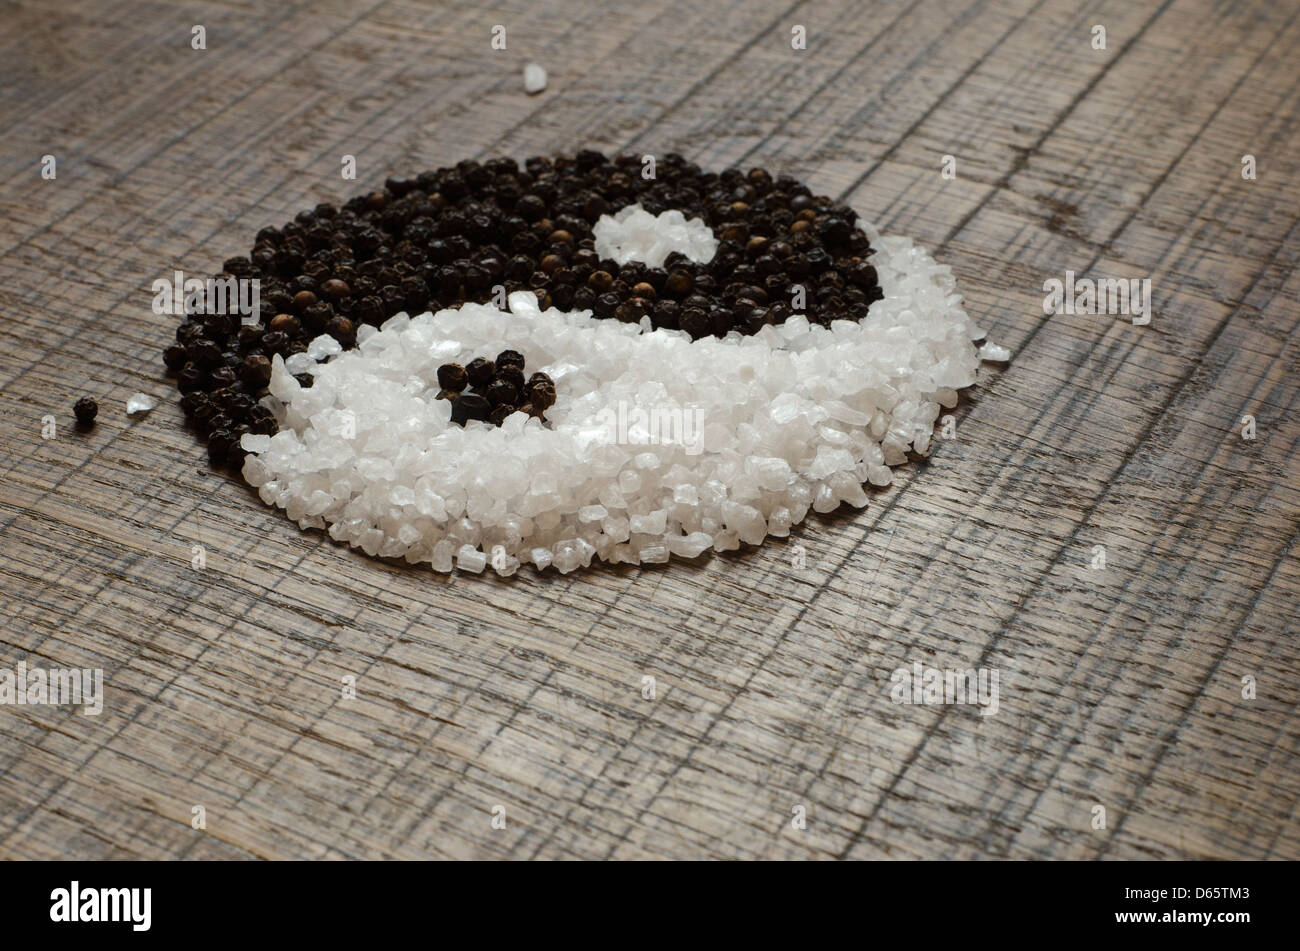 Seasalt and Peppercorns shaped to form a Yin Yang on an Oak Wood Chopping Board - Stock Image